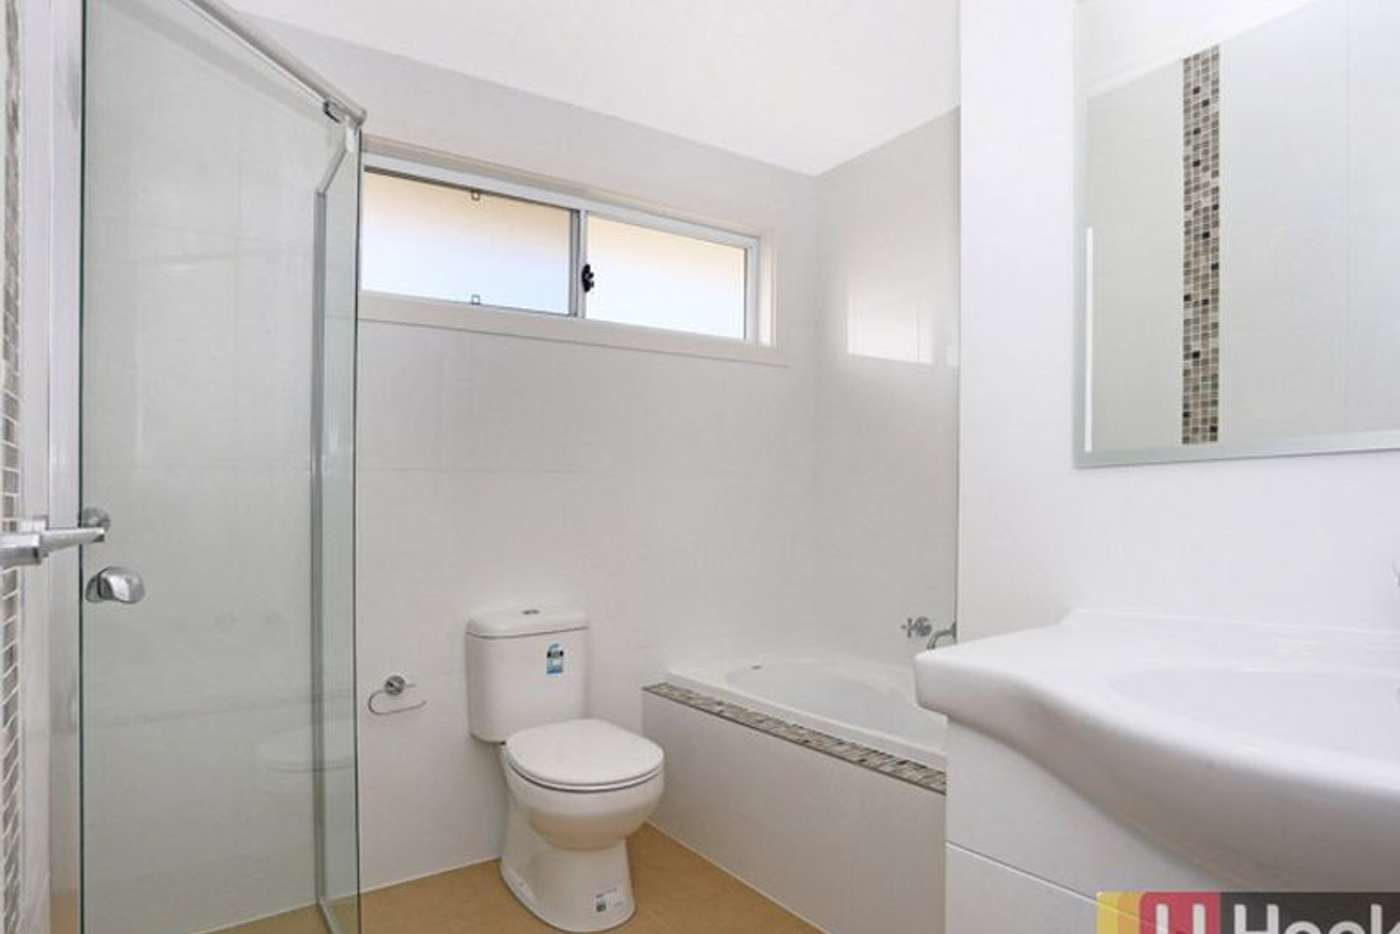 Sixth view of Homely house listing, 3A Innes St, Campbelltown NSW 2560